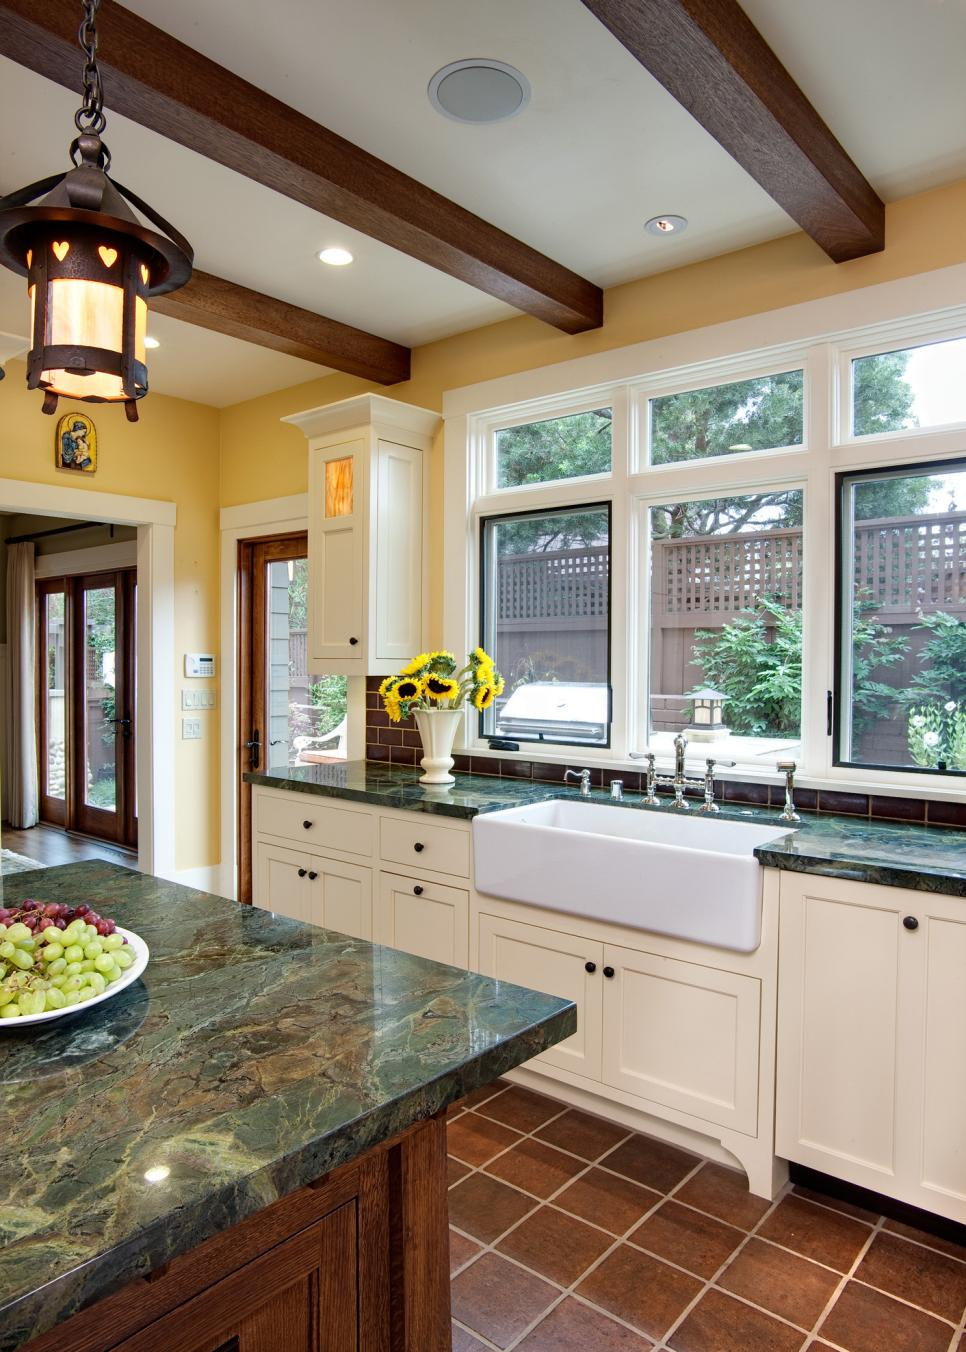 Forest Green Marble Countertop Large White Farmhouse Sink And Exposed Wood Beams In Craftsman Kitchen Hgtv